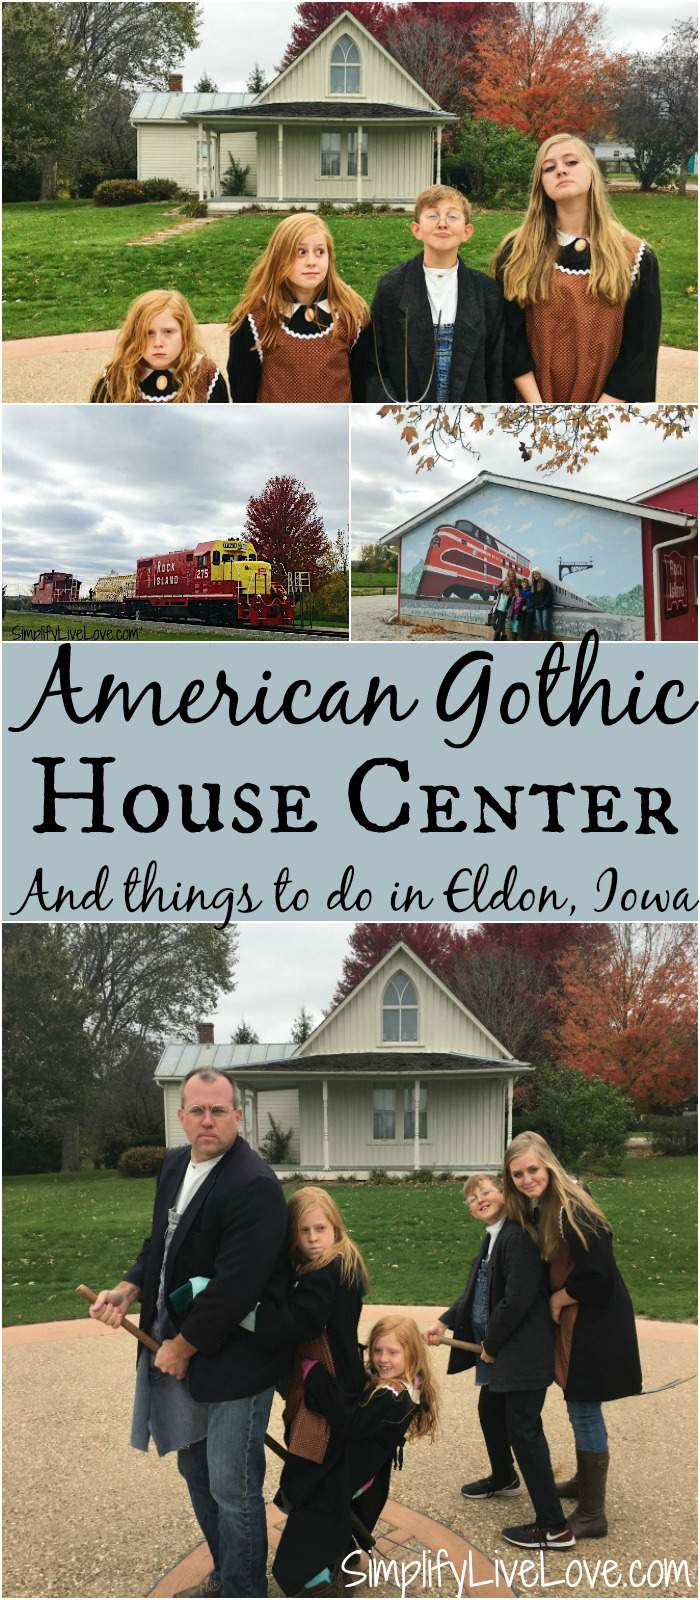 American Gothic House Center and fun things to do in Eldon, Iowa (located in SE Iowa USA). Eldon is a fun place for a weekend road trip!